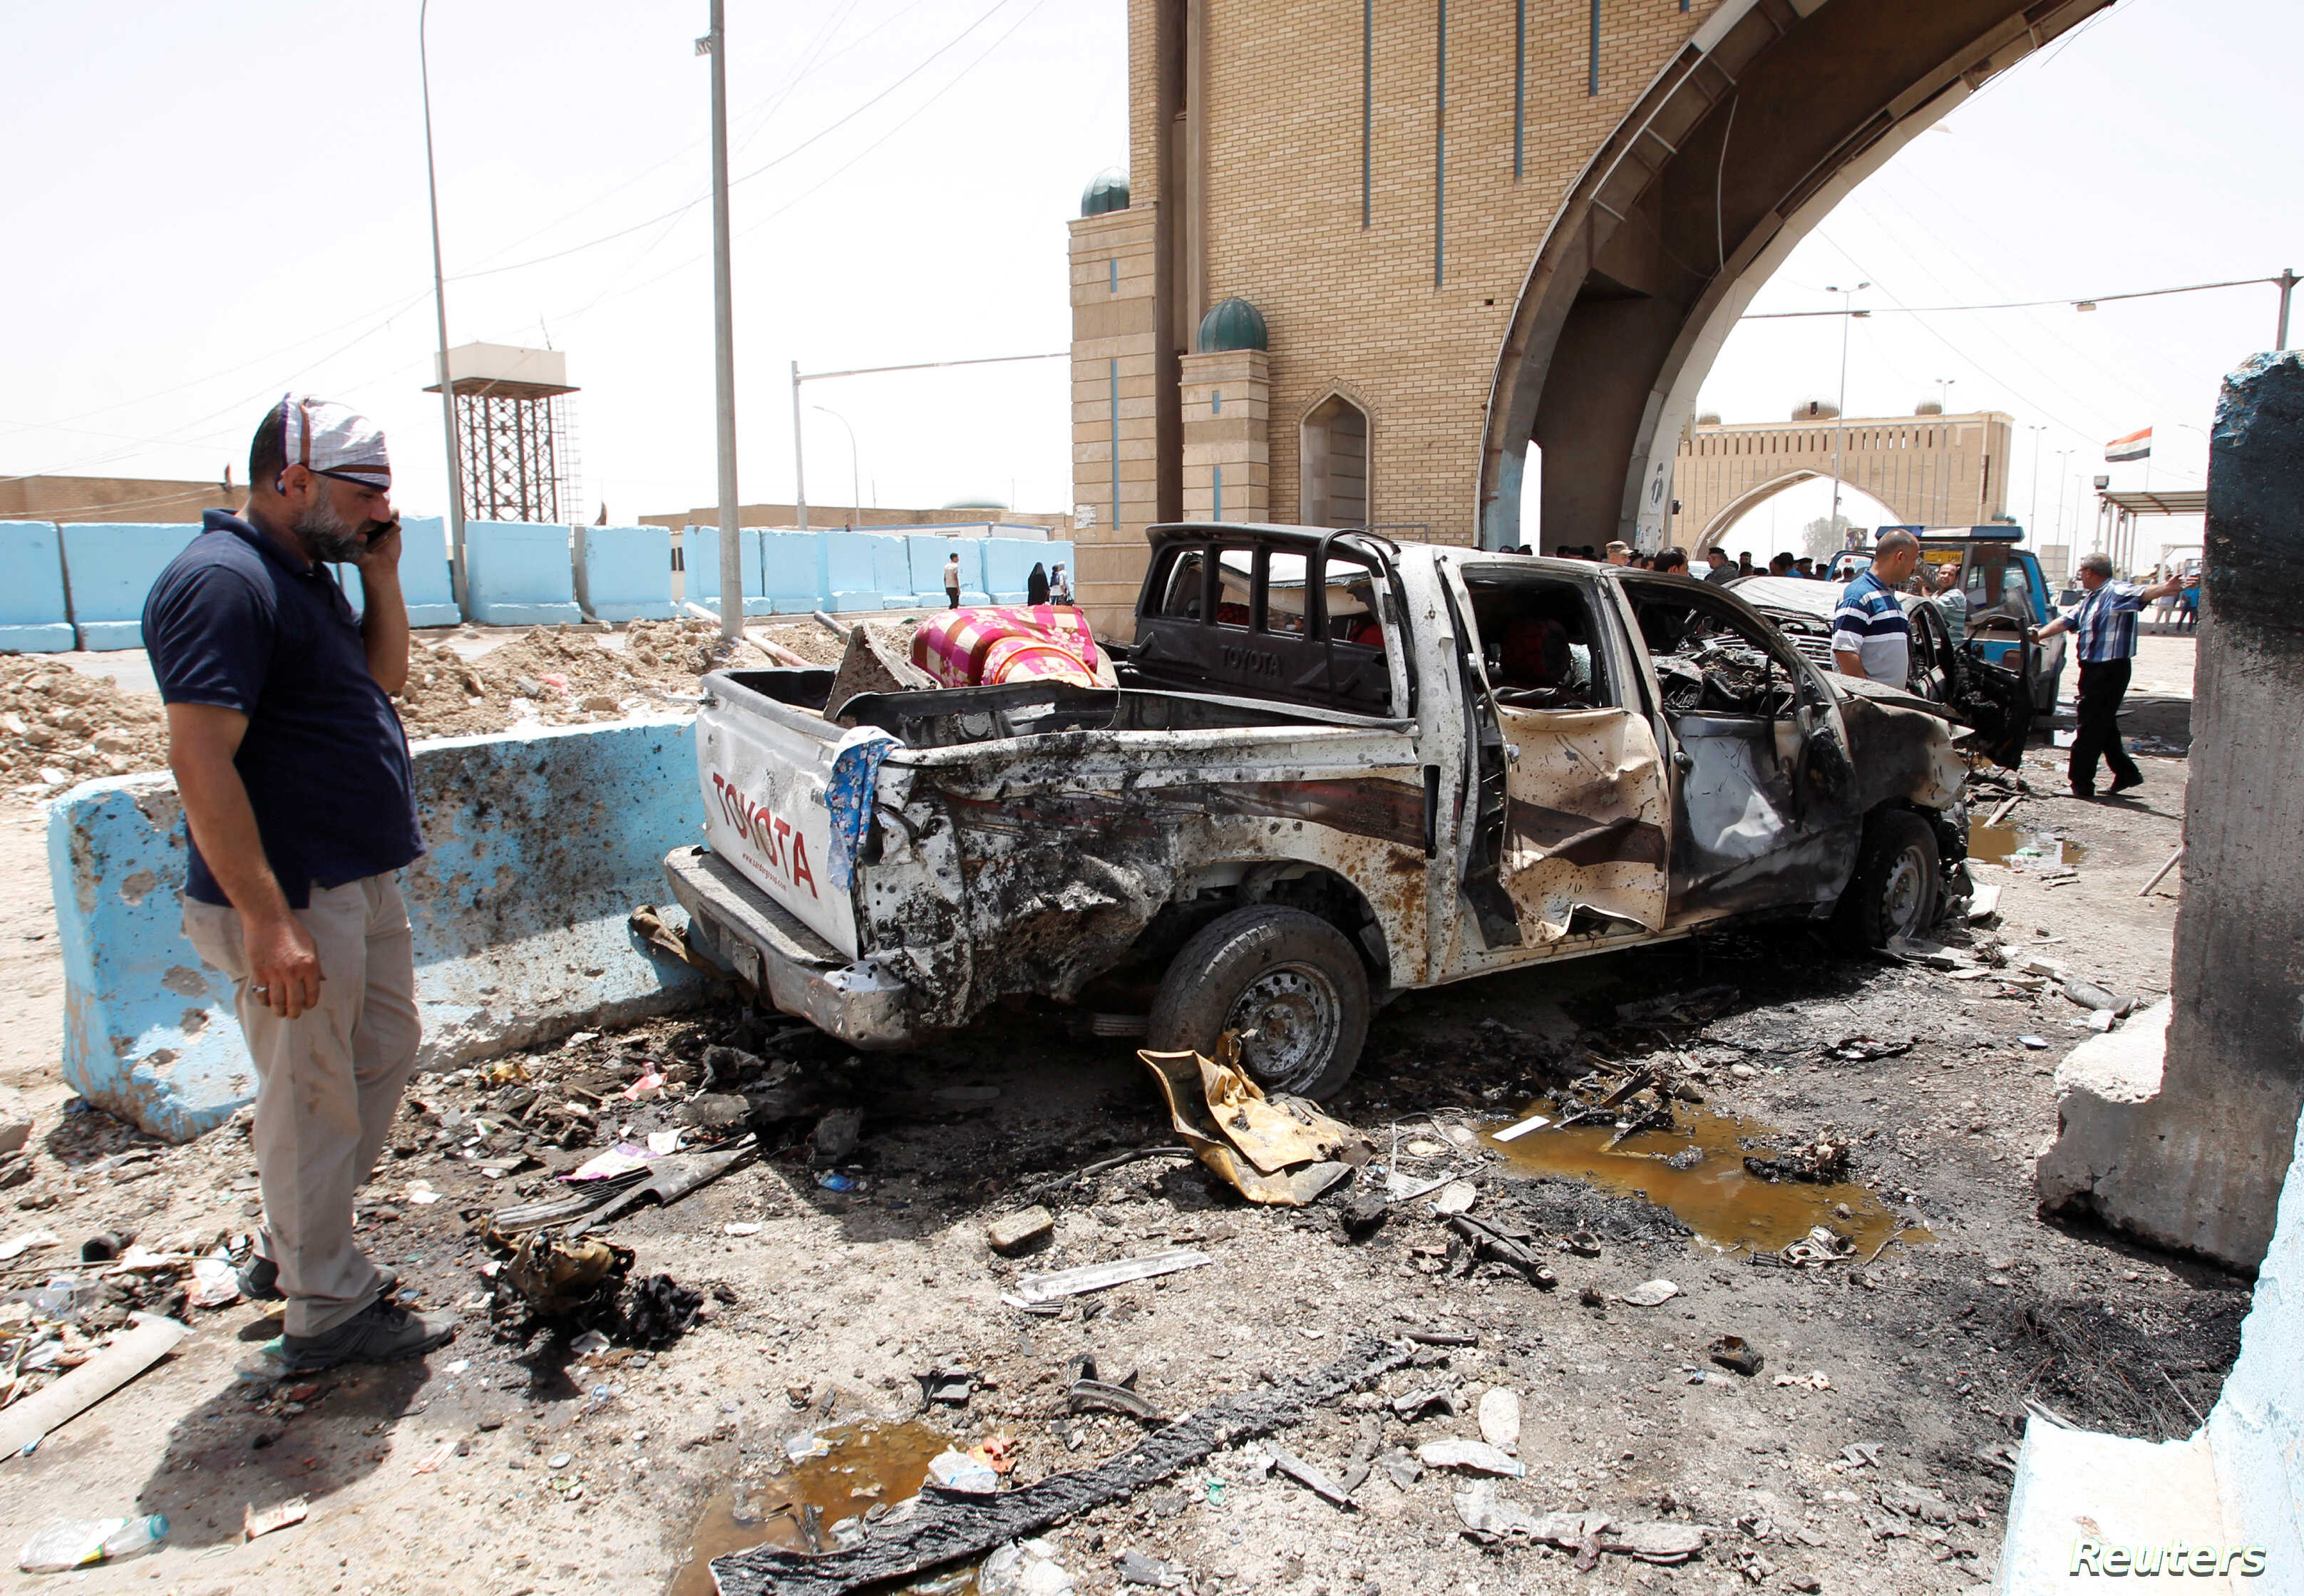 A man stands at the site of a suicide bomb attack at a checkpoint in Rashidiya, a district north of Baghdad, Iraq on July 13, 2016.